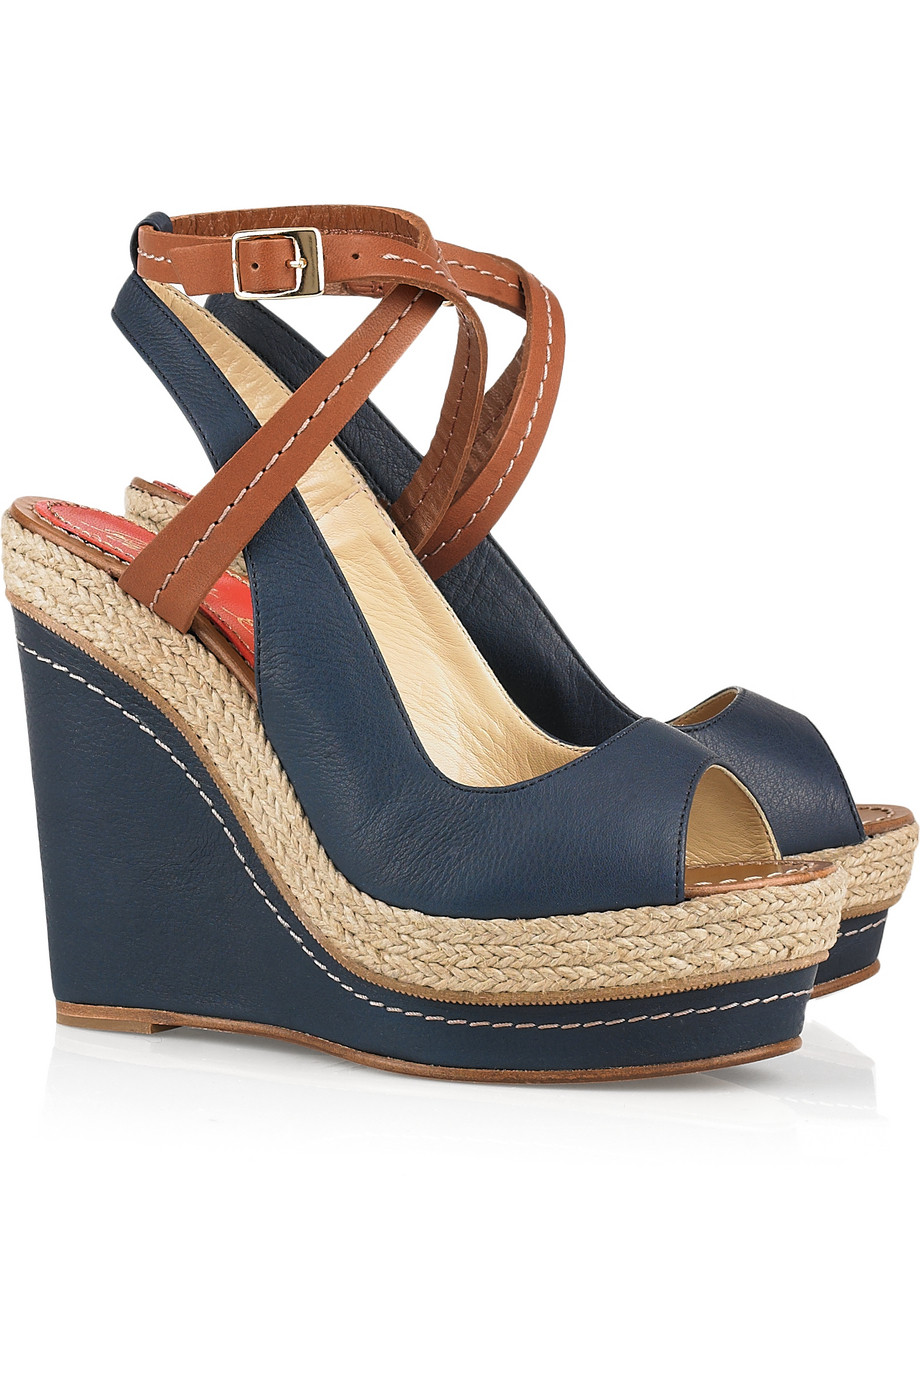 Paloma barceló Velati Leather Wedge Sandals in Blue (navy ...